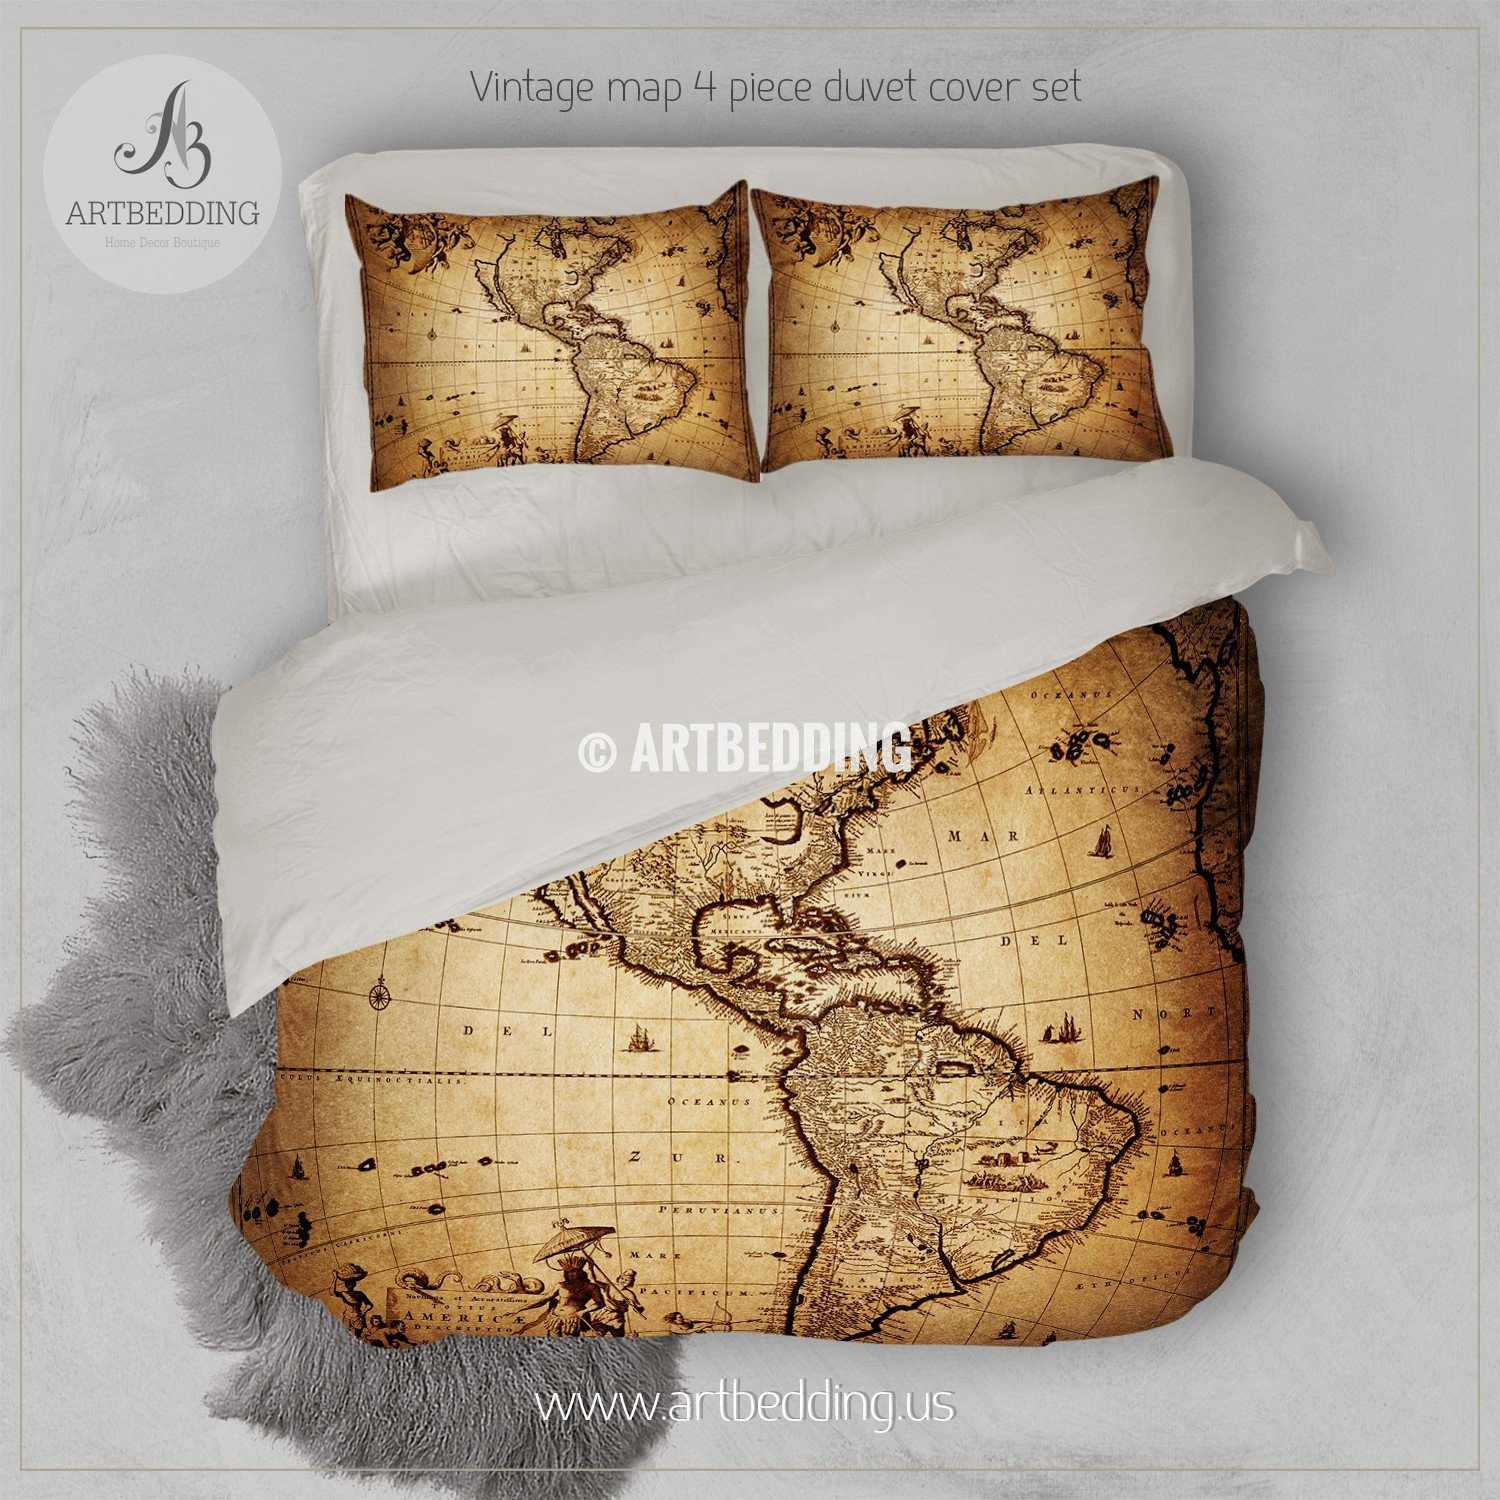 America old map bedding, Vintage South and North America map duvet on map sheet, map home decor, map drawing, map market garden, map paper, map quilt, map furniture, map gallery wall, map blanket, map games, map travel, map office decor, map wallpaper, map room ideas, map pillow, map dishes, map crib set, map baby nursery, map shower curtain, map themed bedroom,